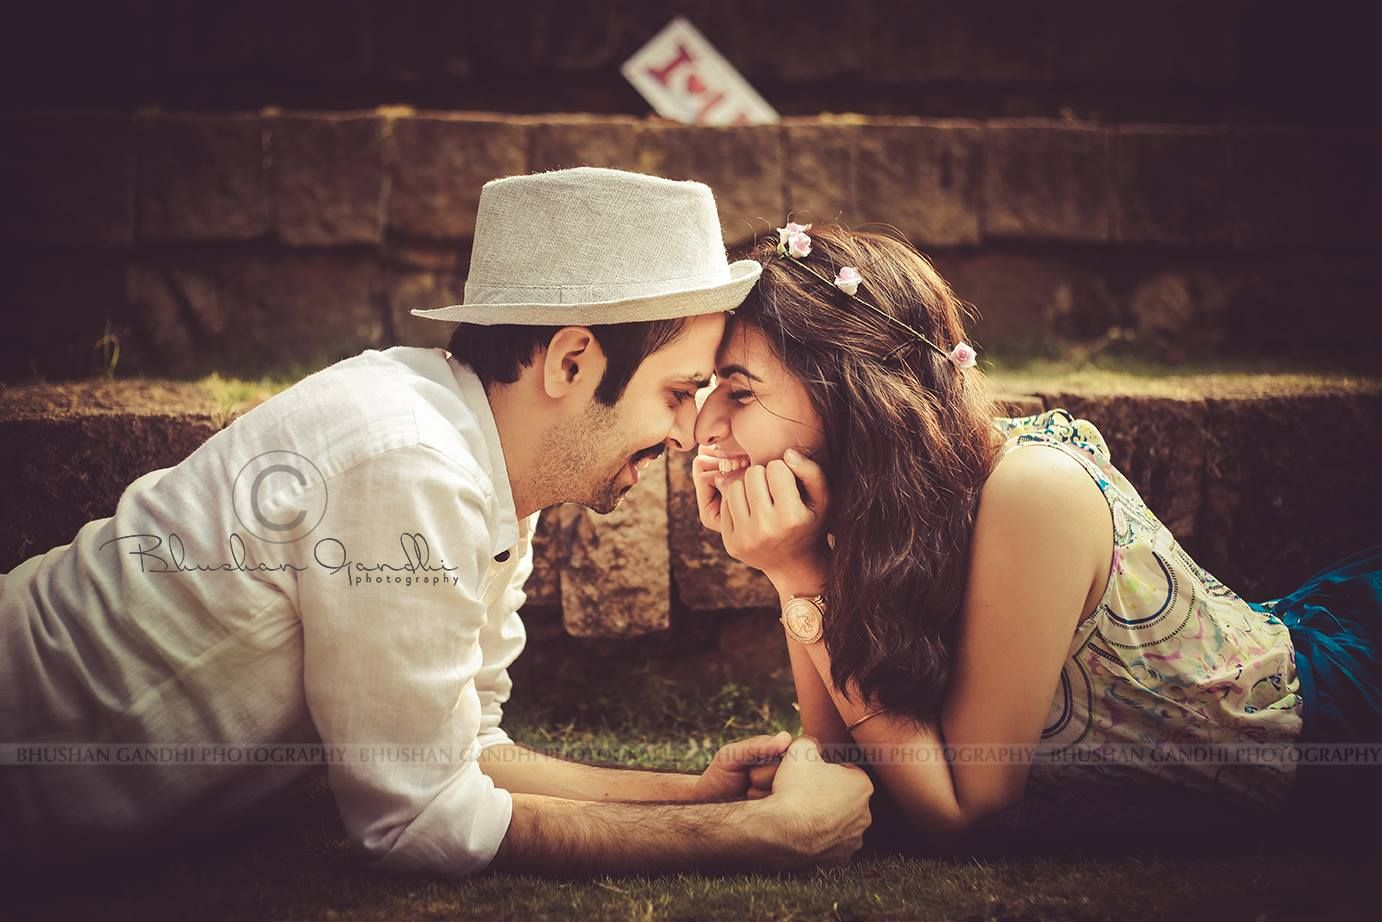 Pin by urvi gada on photos in pinterest wedding photoshoot